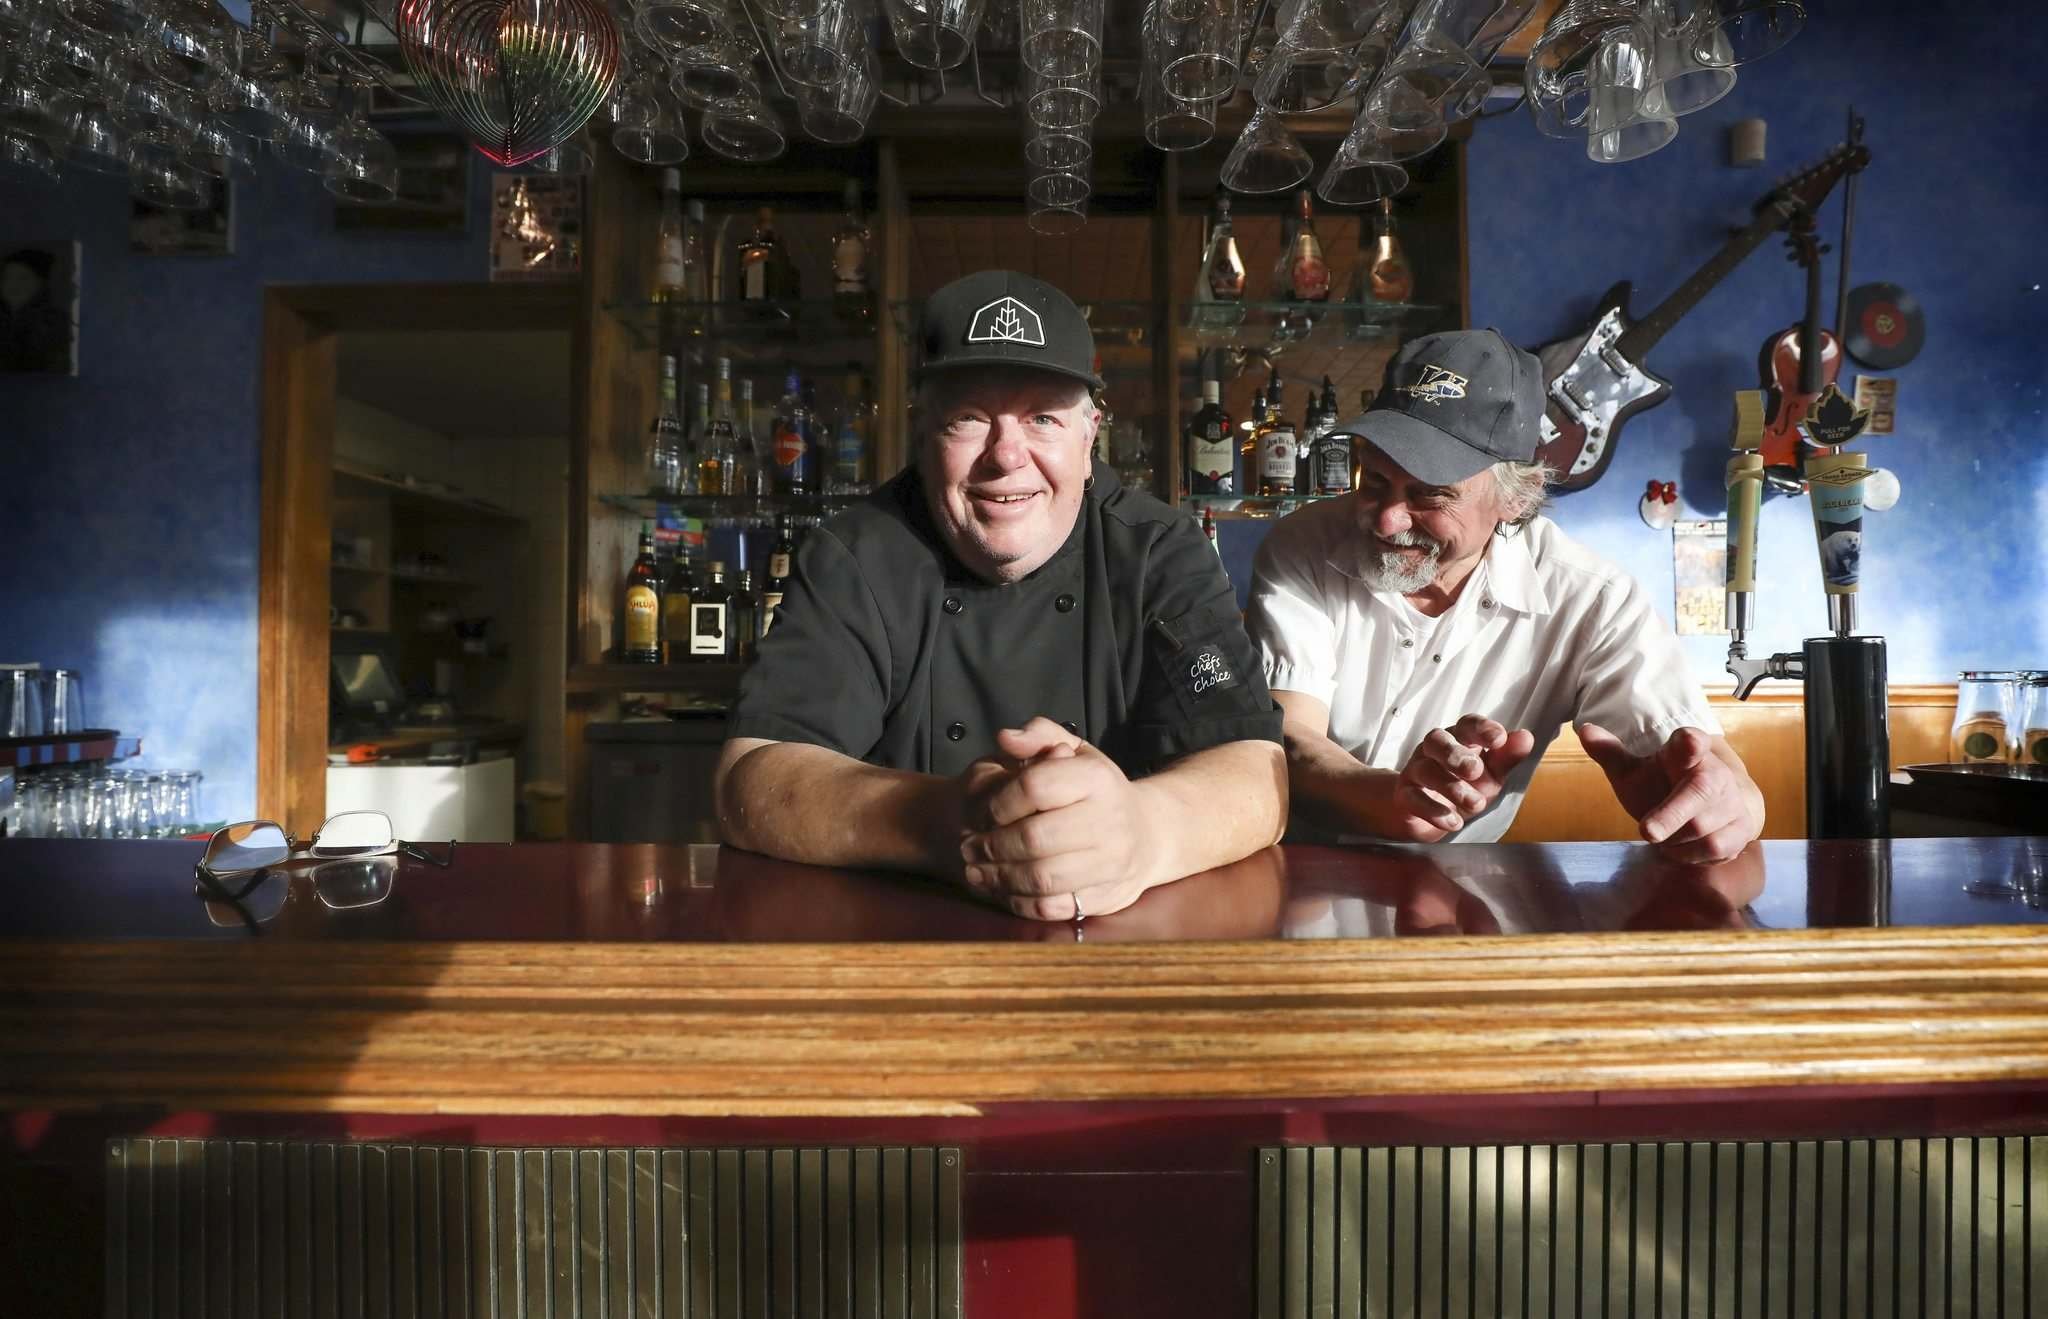 Ross Jeffers (left) hoped to host weekend brunches at Bella Vista in collaboration with Armand Colosimo, instead he bought the place. (Ruth Bonneville / Winnipeg Free Press)